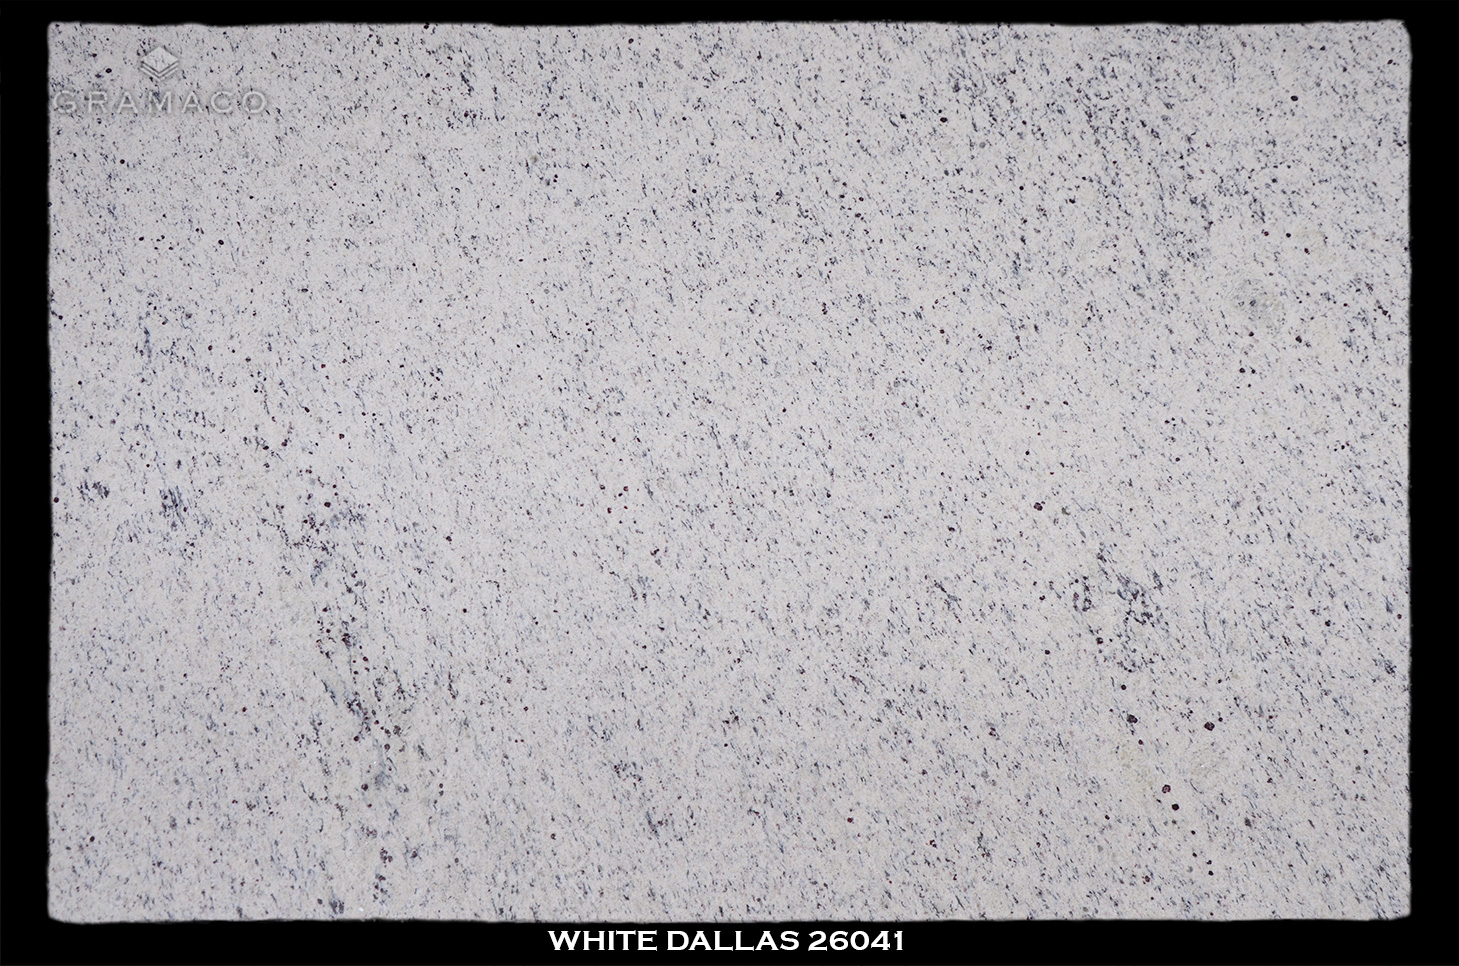 WHITE-DALLAS-26041